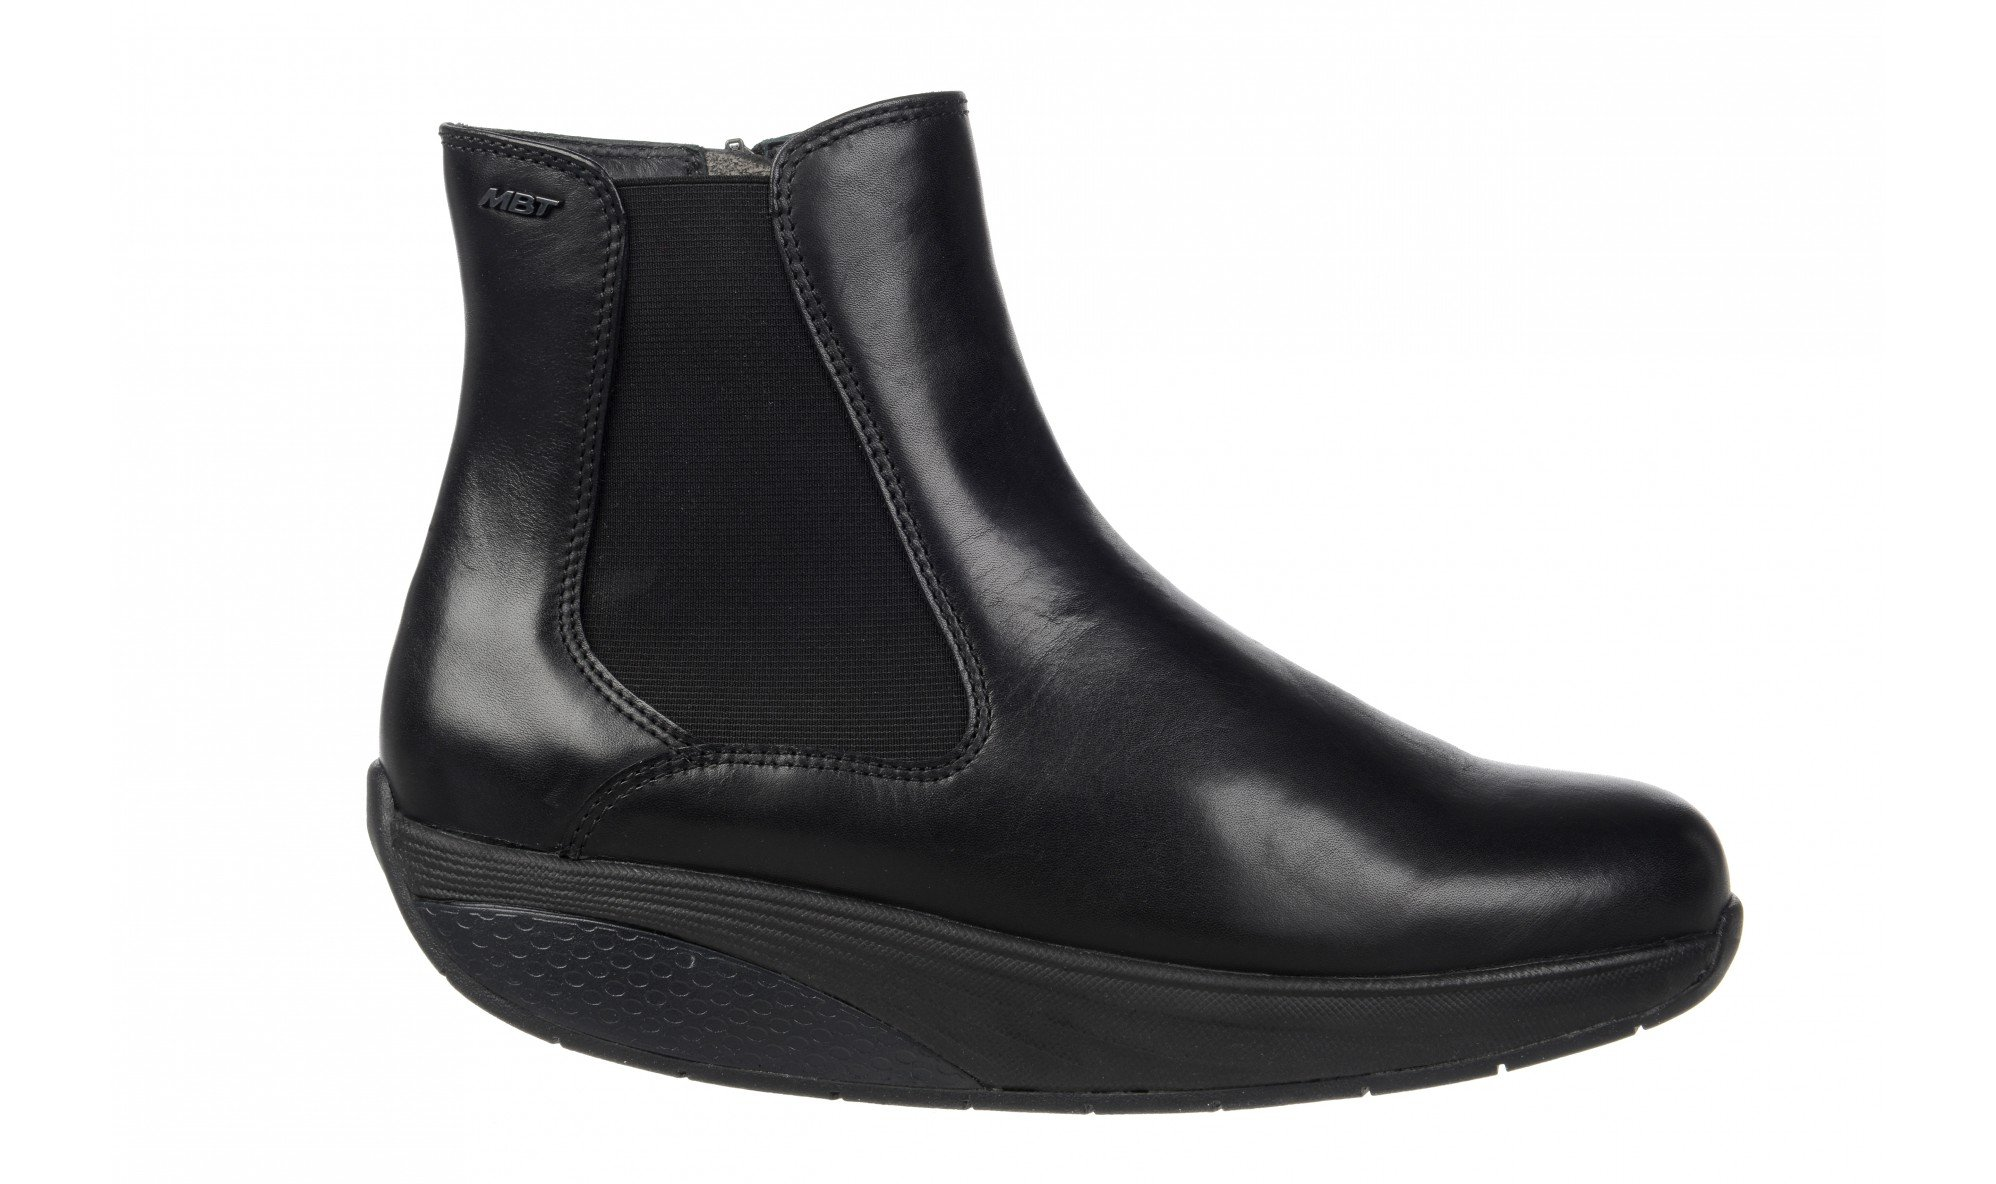 MBT WOMEN'S ARUSI ANKLE BOOT WITH VIBRAM SOLE (BLACK OR BROWN) (EU37(6-6.5), BLACK)